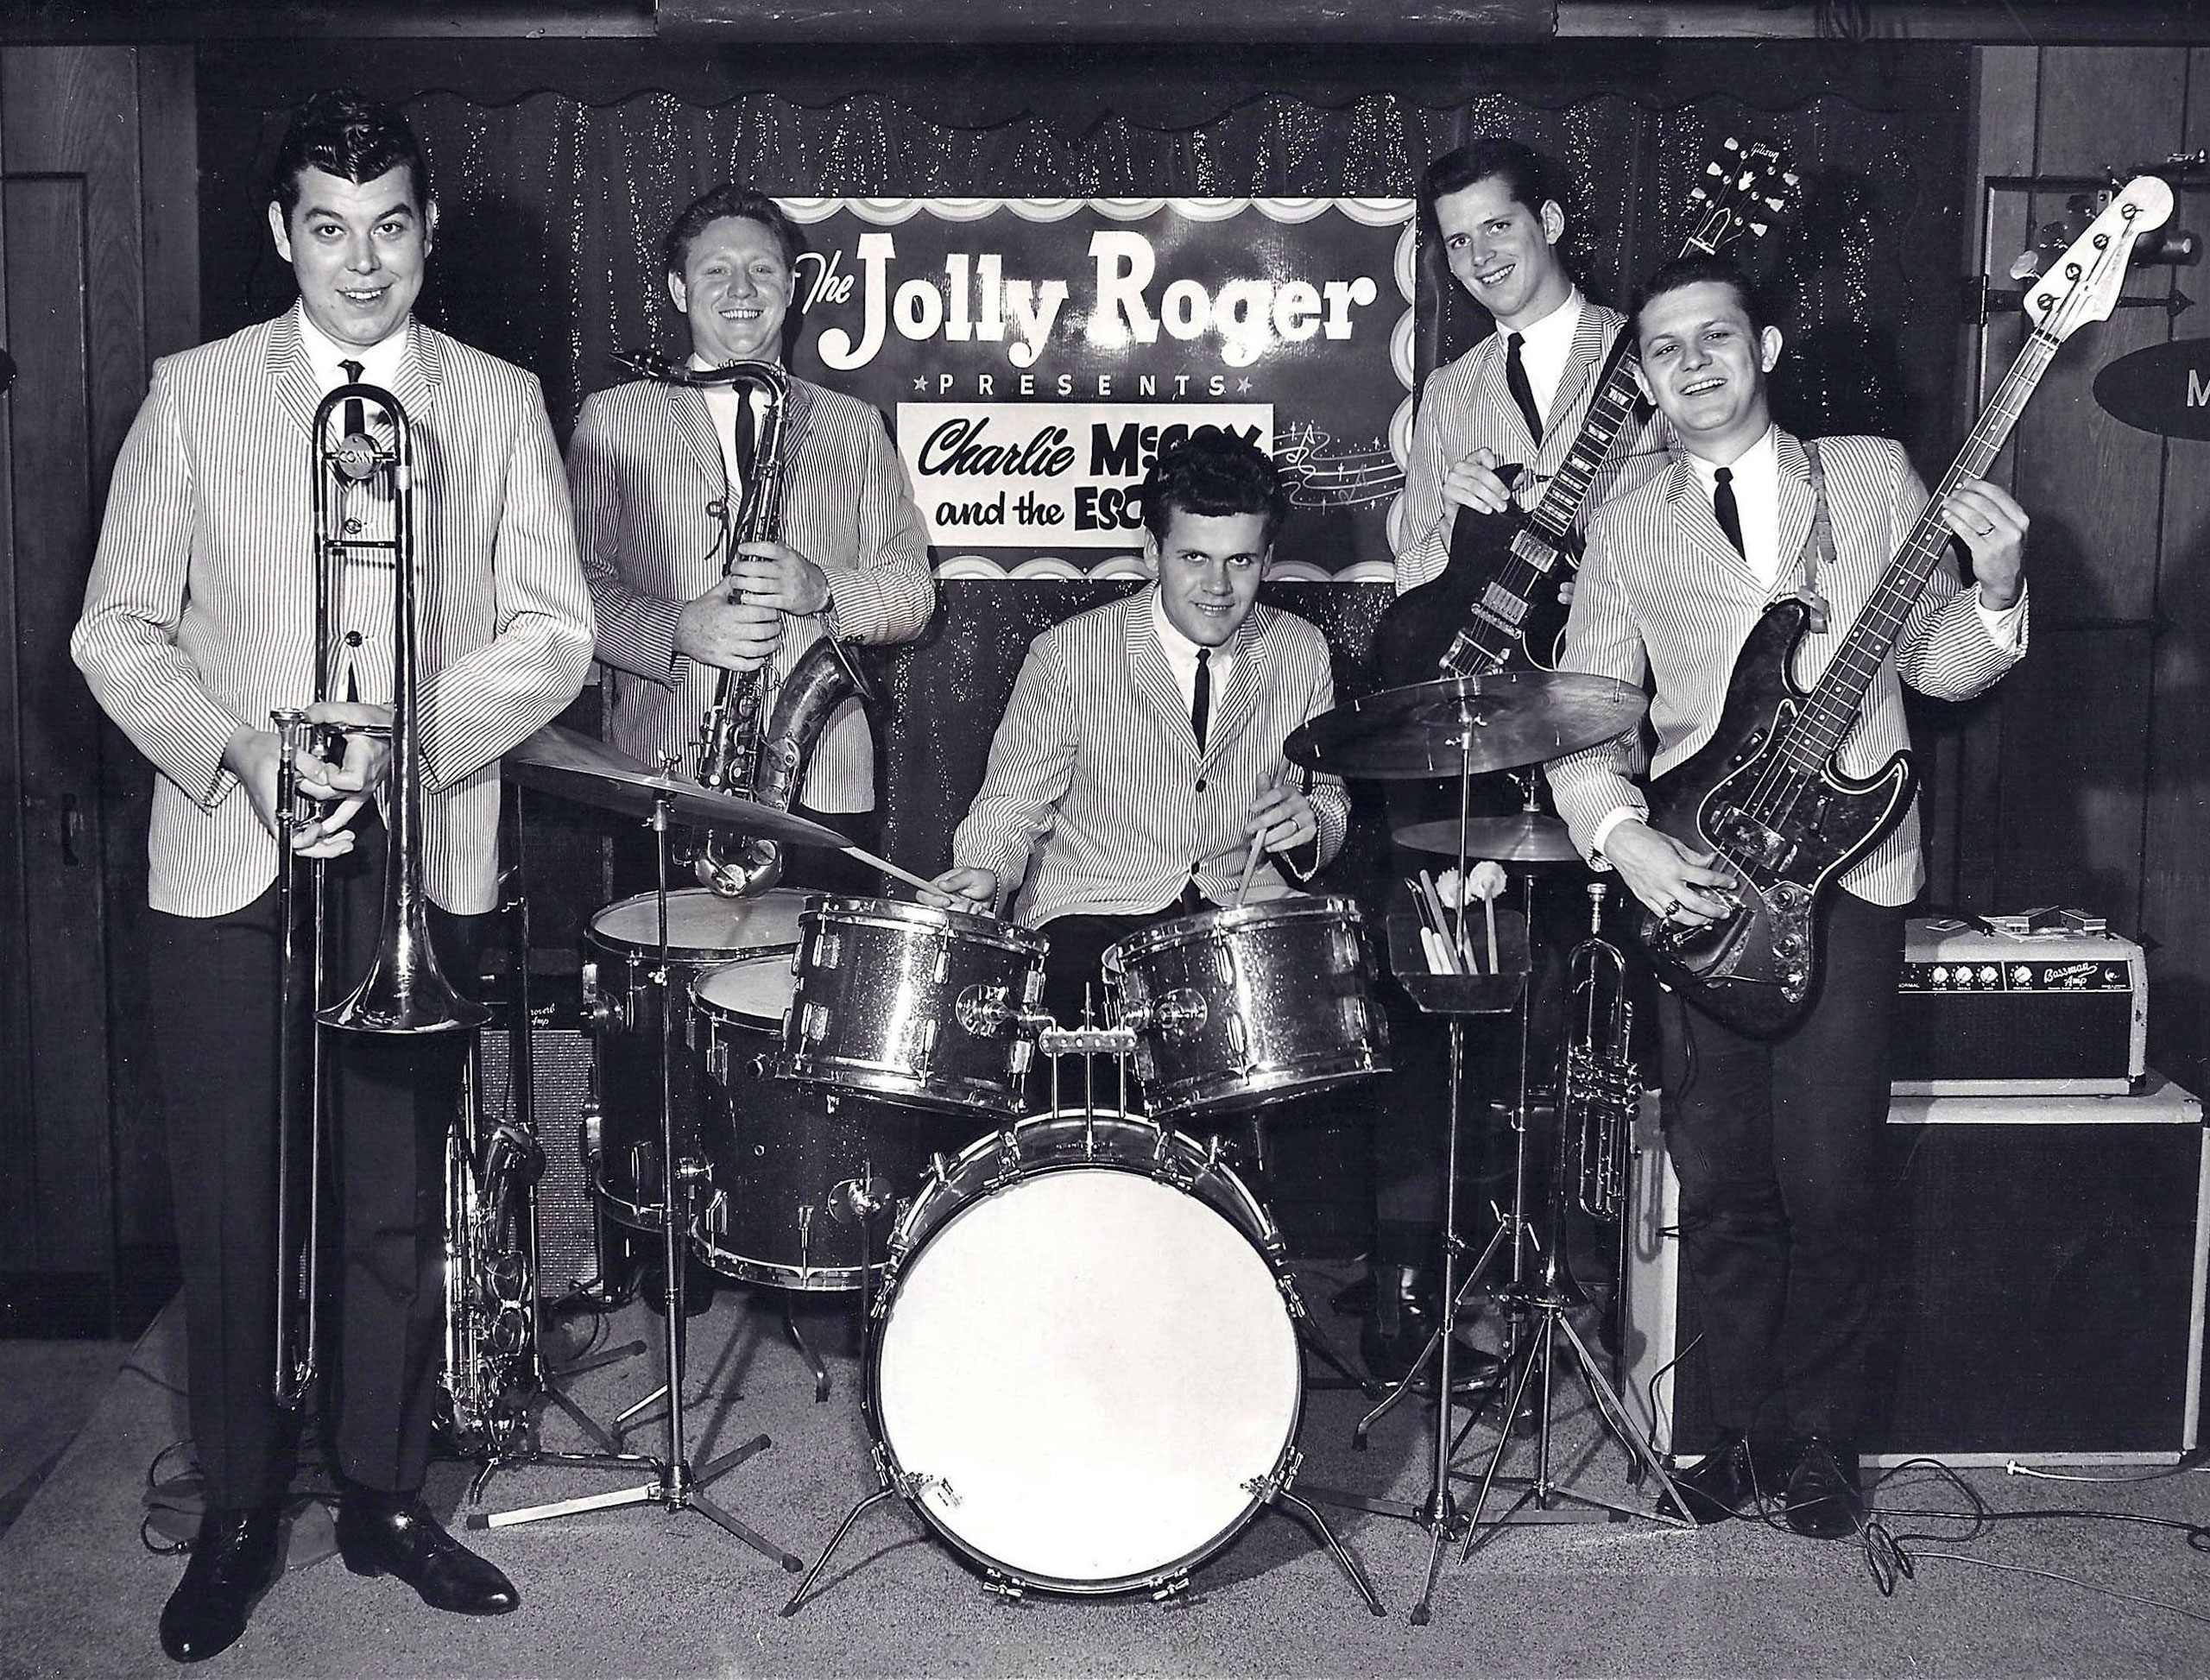 Charlie McCoy and the Escorts perform at the Jolly Roger in Printers Alley, circa 1965. Pictured are (l-r): Wayne Butler, Jerry Tuttle, Kenny Buttrey, Mac Gayden, and Charlie McCoy.